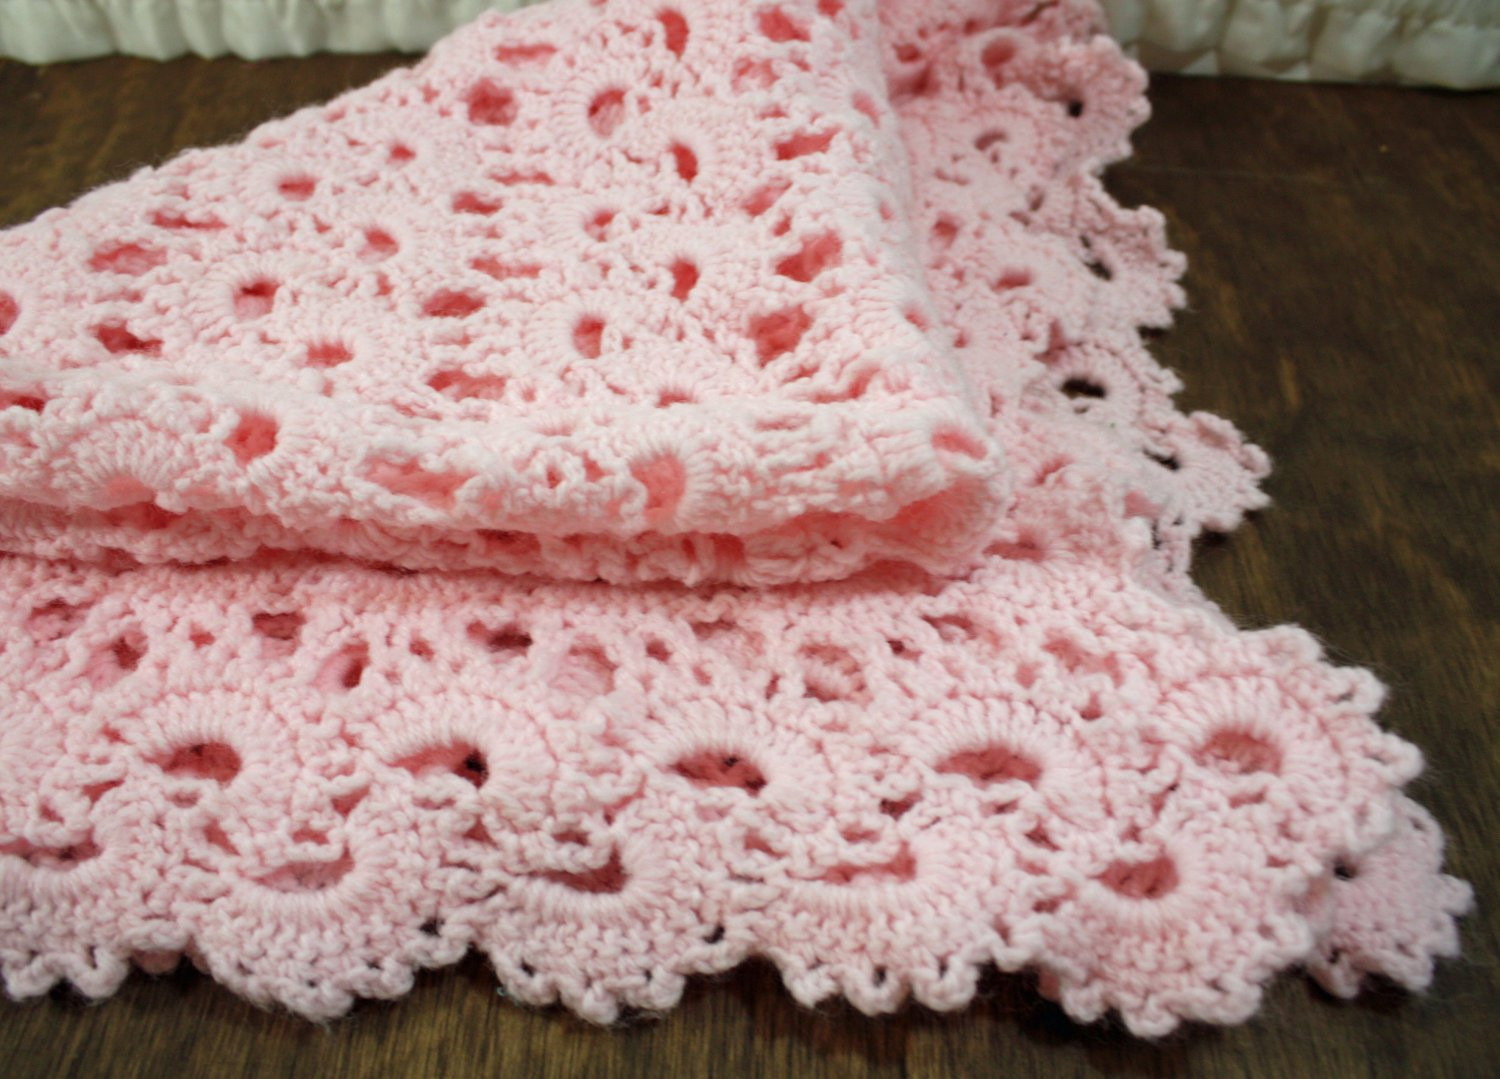 Crochet Baby Blanket for Sale Fresh Sale Pink Crocheted Baby Blanket Of Attractive 48 Photos Crochet Baby Blanket for Sale